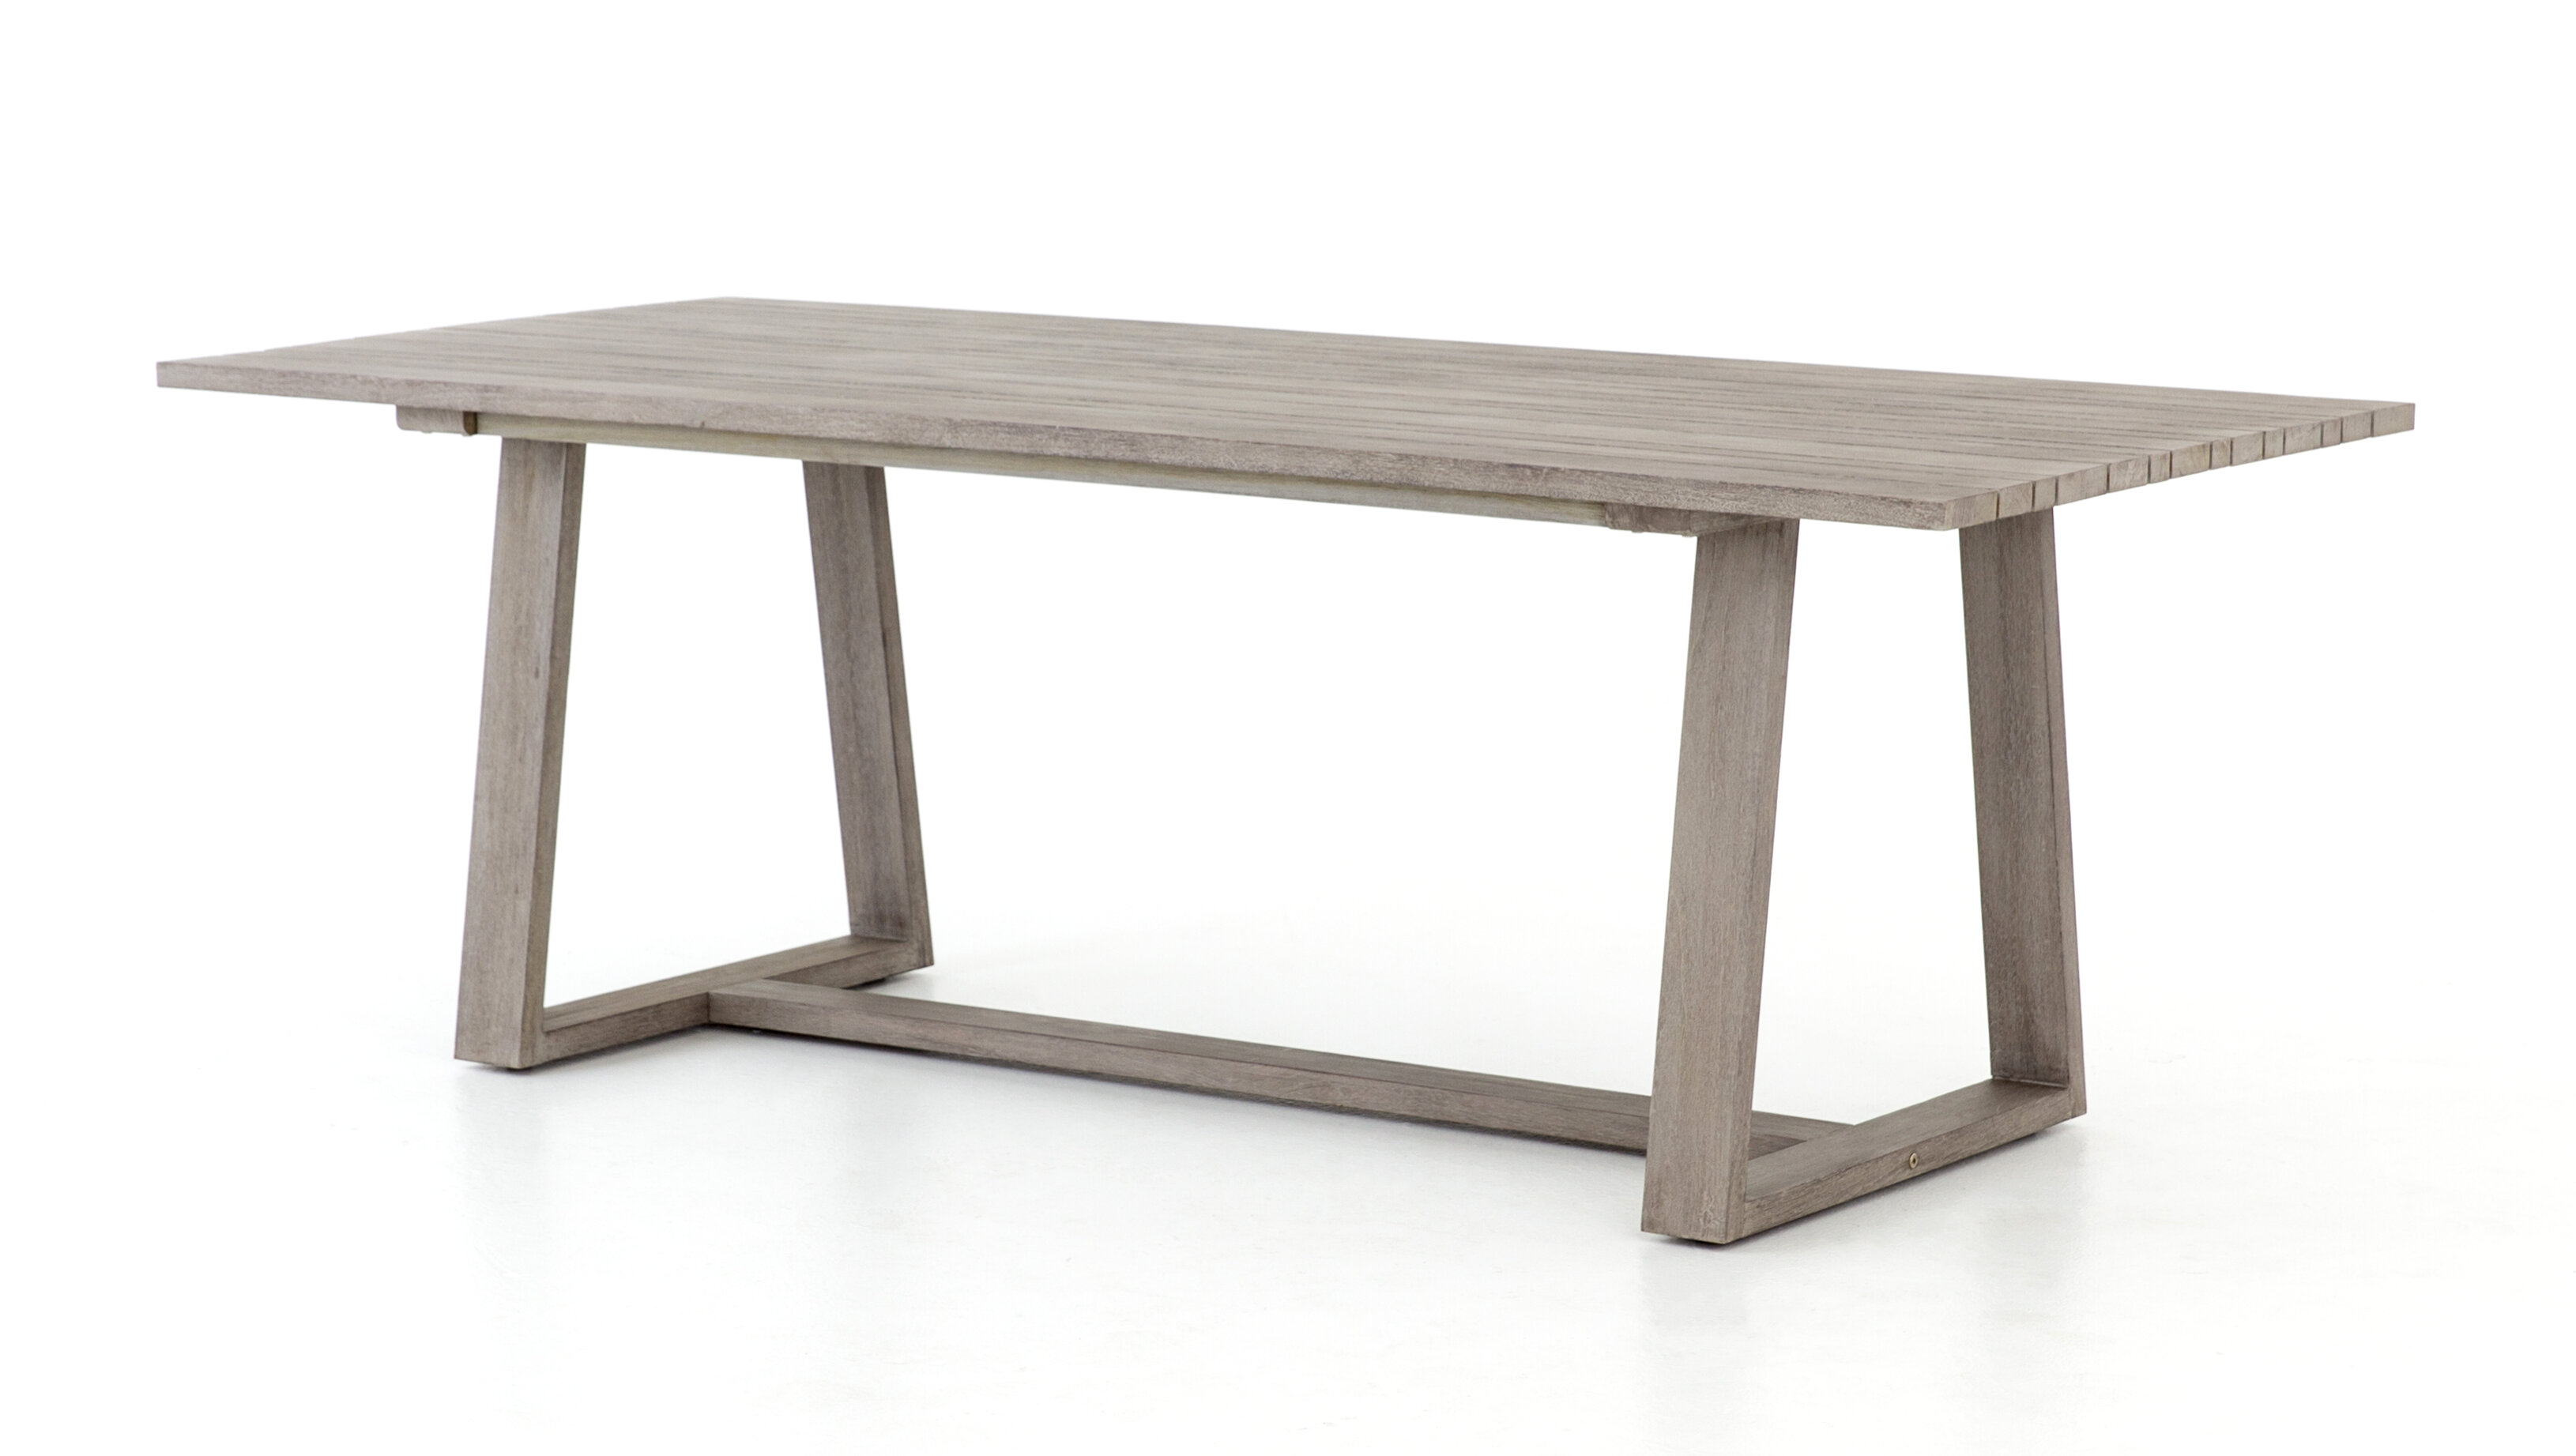 Scandinavian Patio Dining Tables You Ll Love In 2021 Wayfair